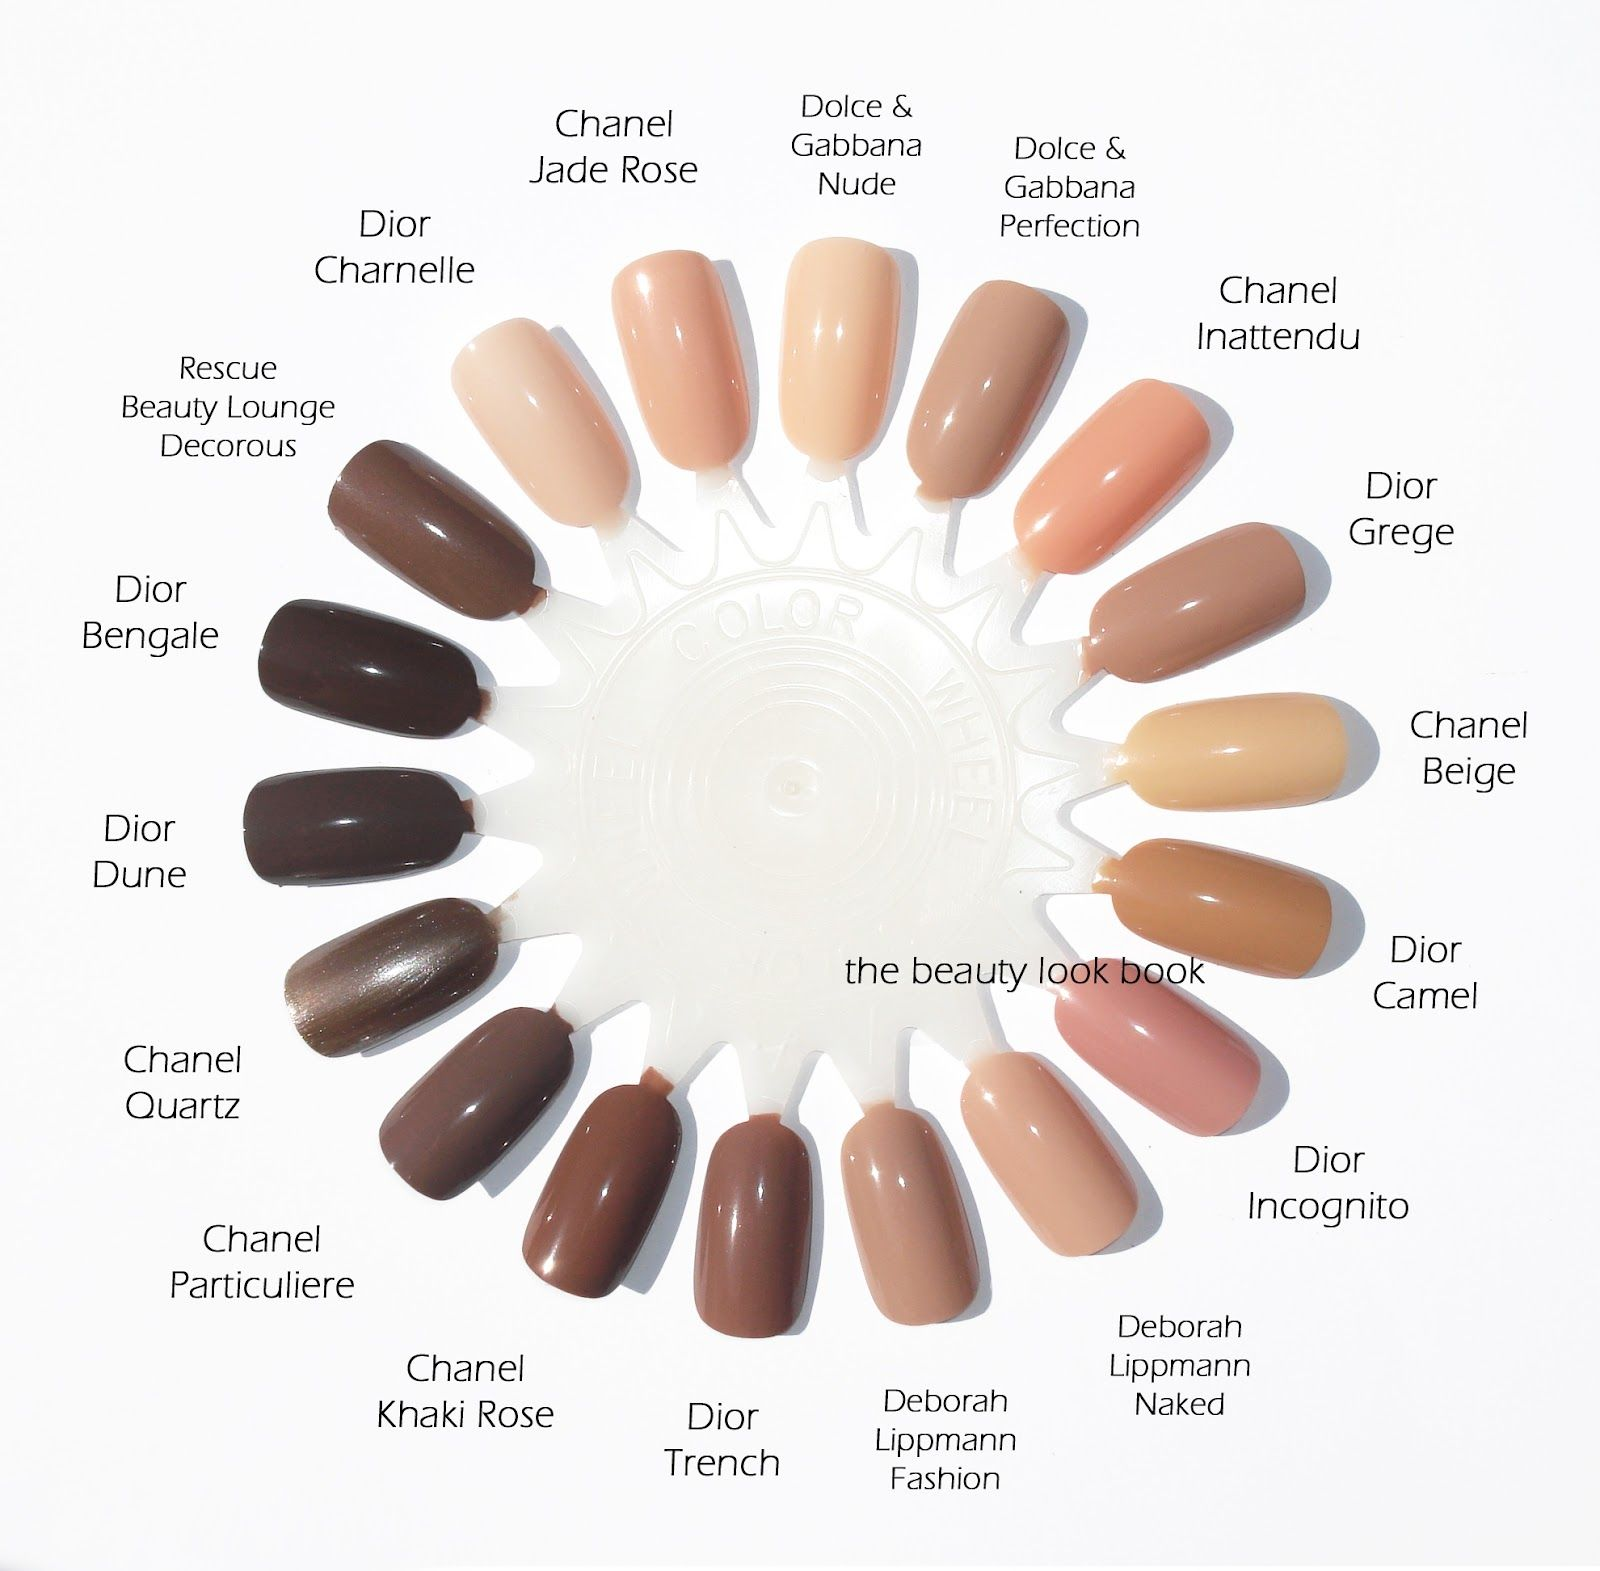 The Beauty Look Book Dior Vernis Nudes in Charnelle, Grège, Trench and